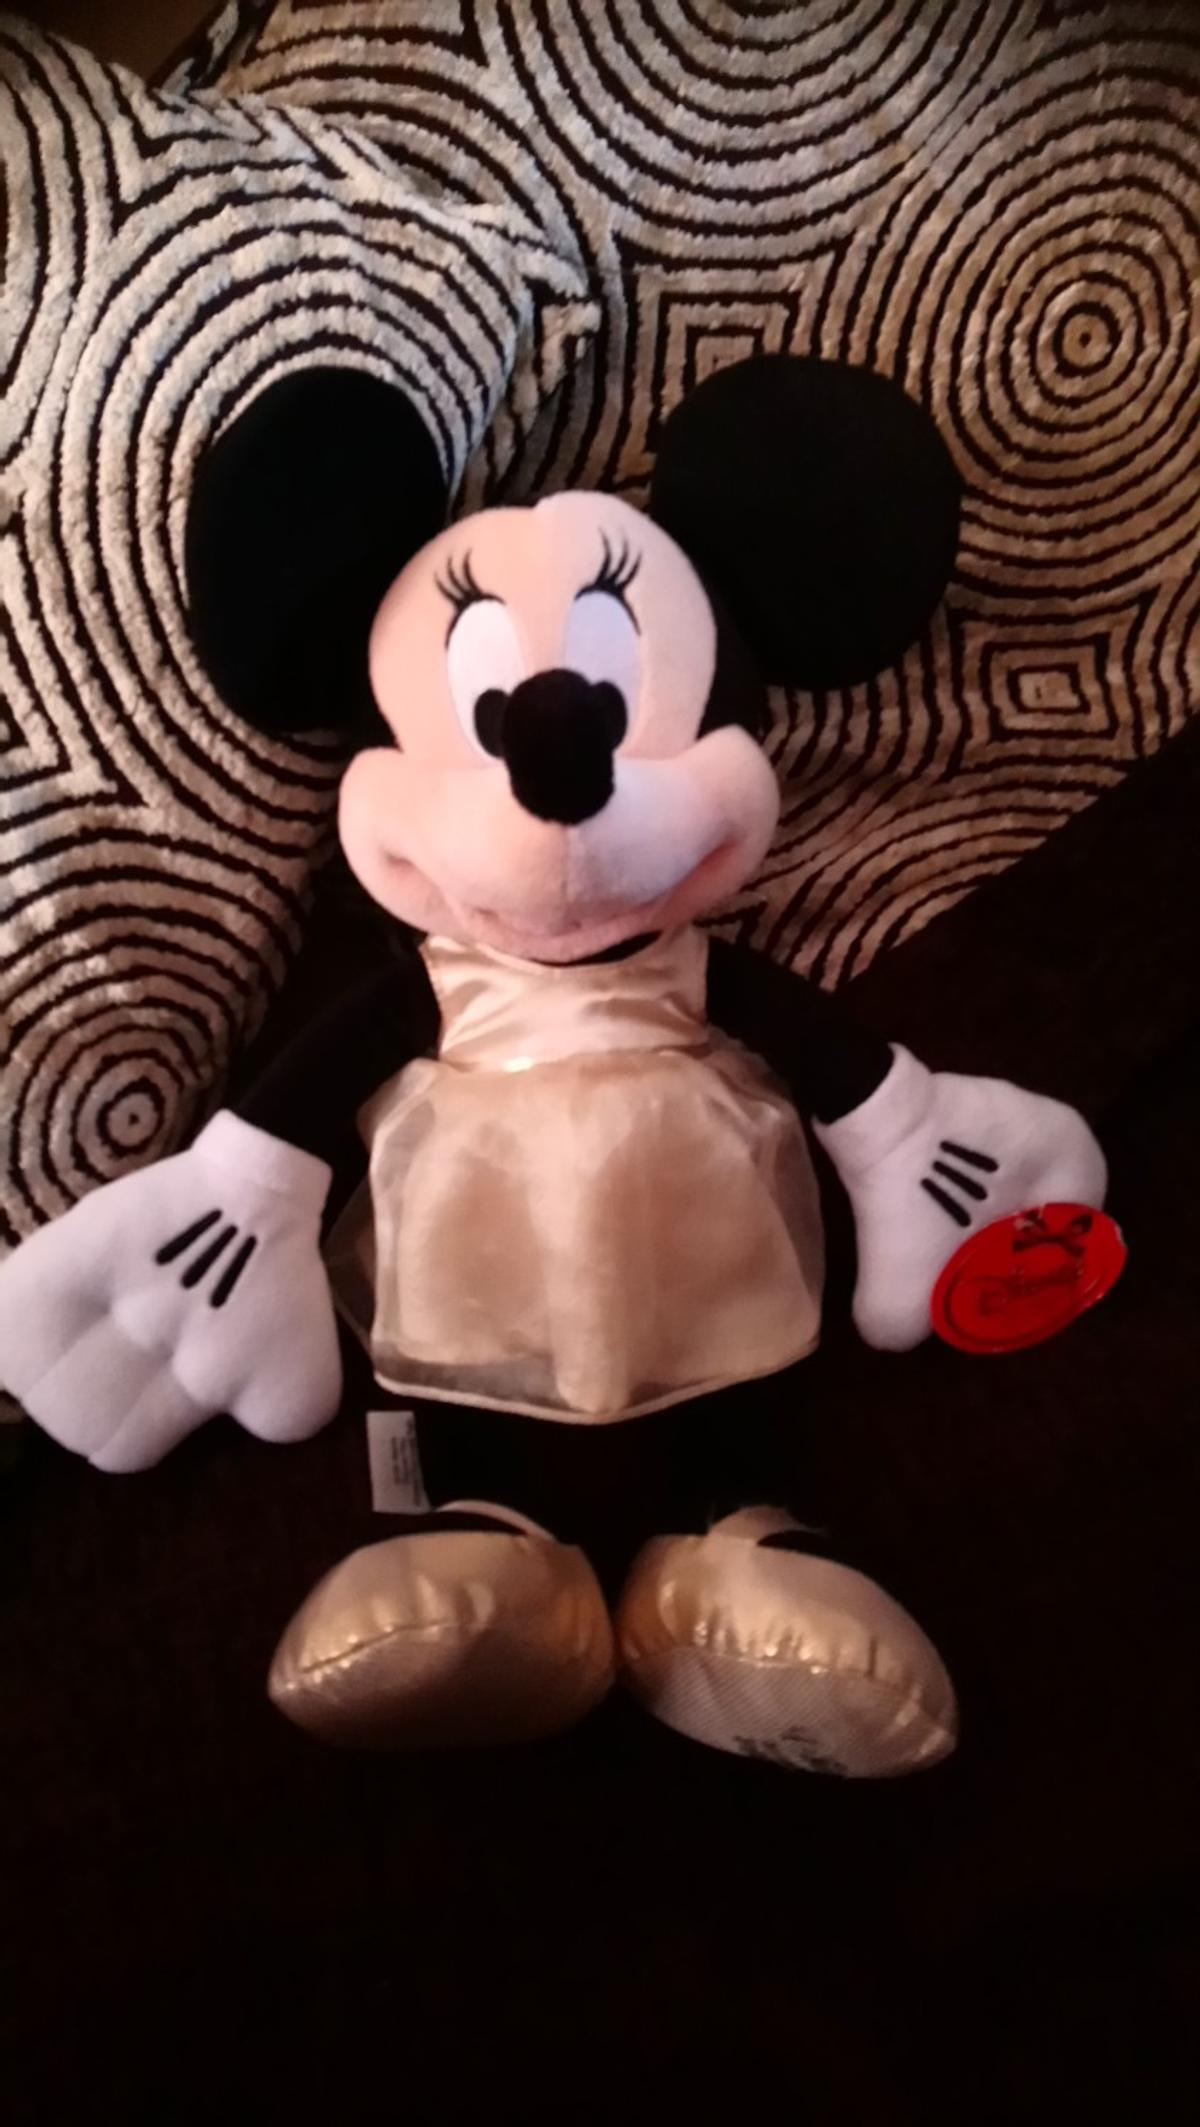 Disney minnie mouse soft toy 2013 edition, new condition with tags, postage available £3.00 p&p hermes tracked.